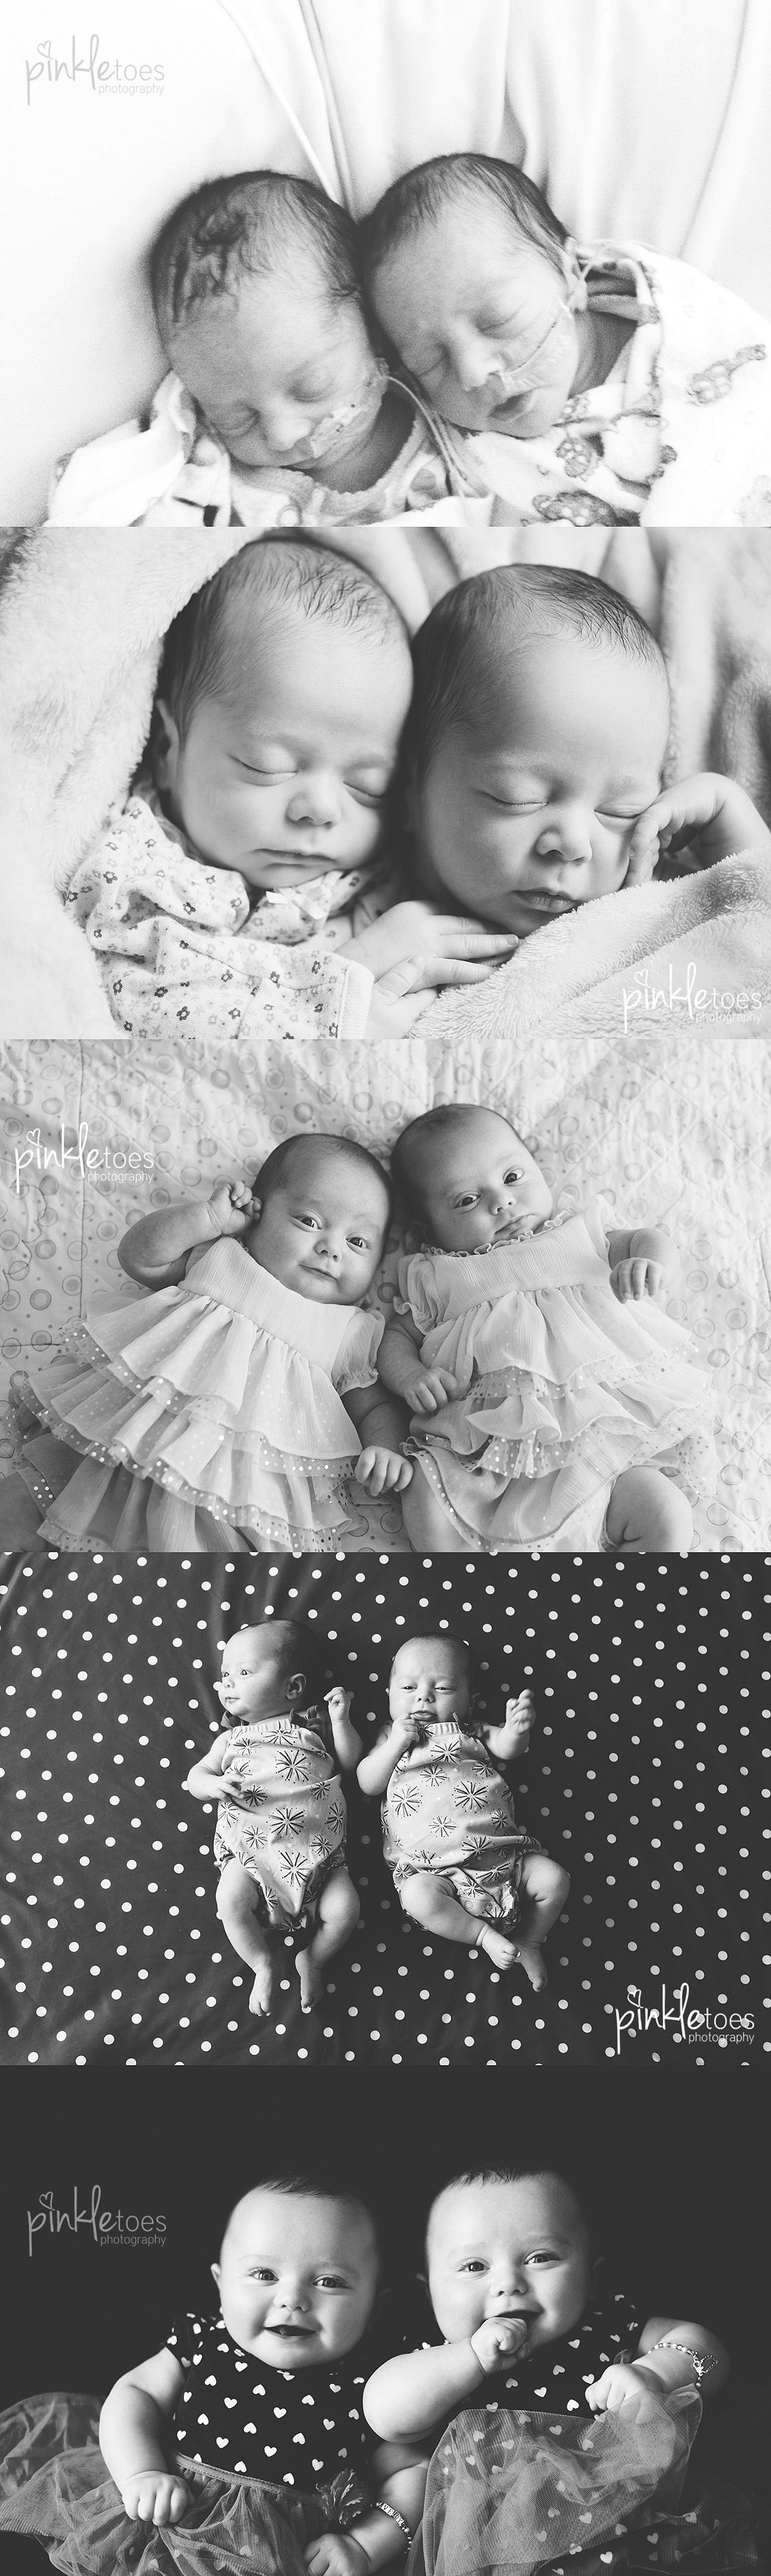 aunt-poppys-nieces-austin-twin-photography